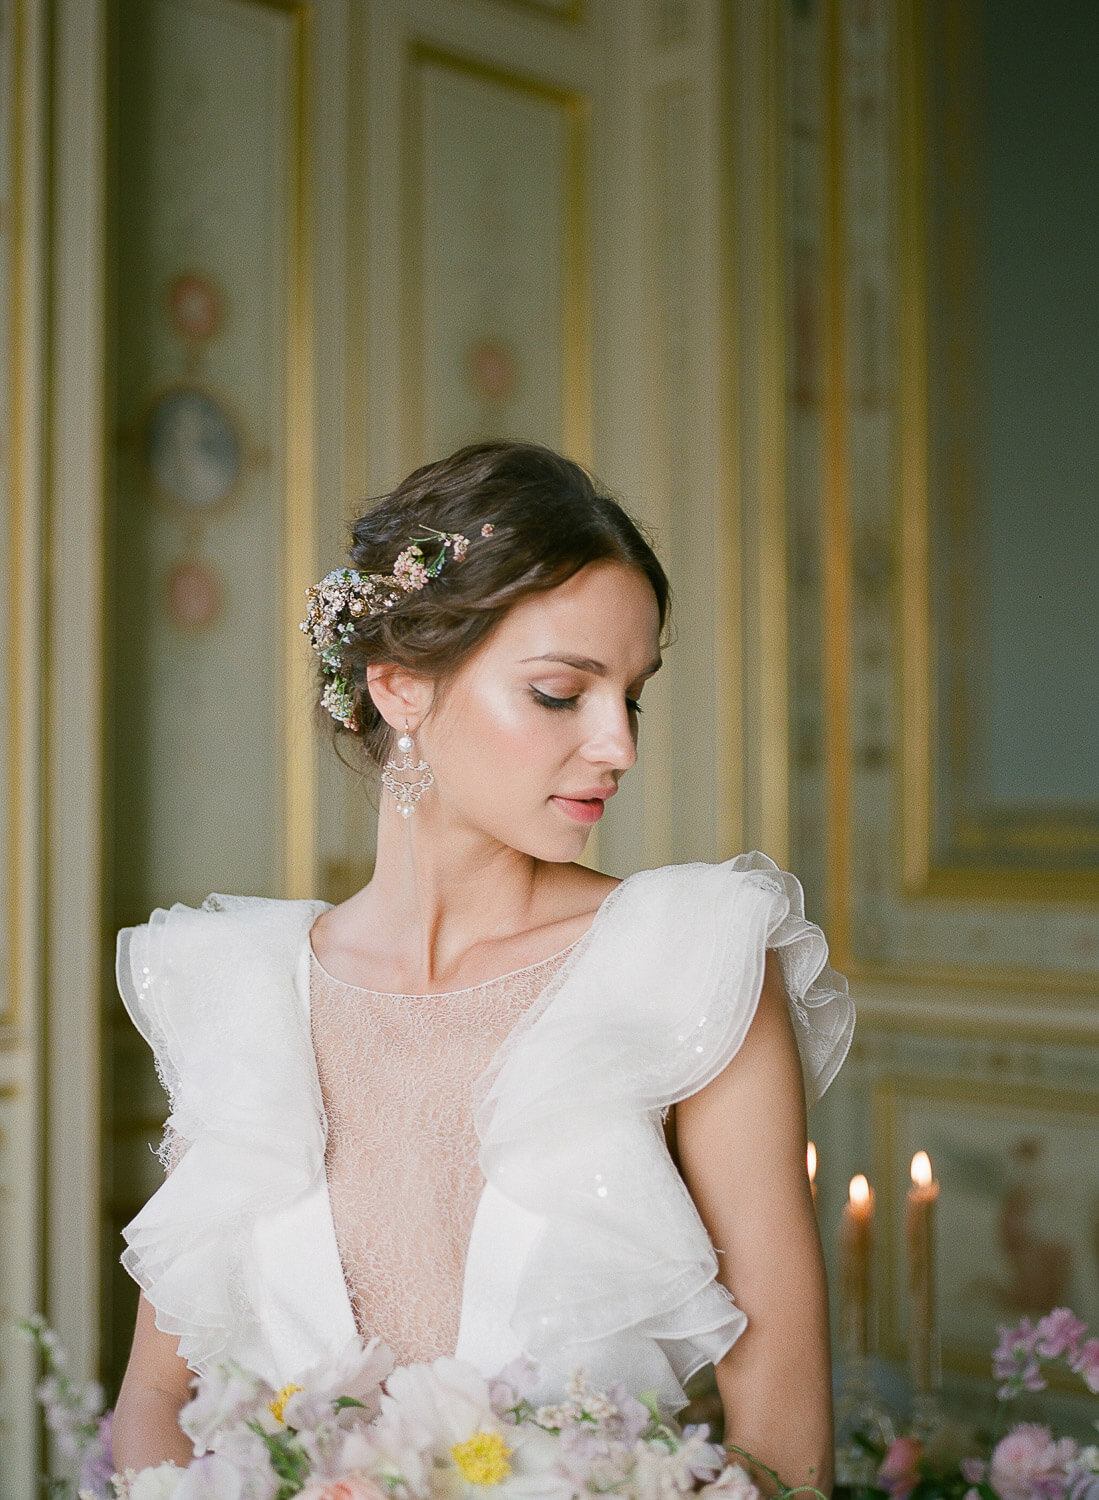 Beautiful Bridal portrait at Greg Finck Workshop by Portugal Wedding Photographer